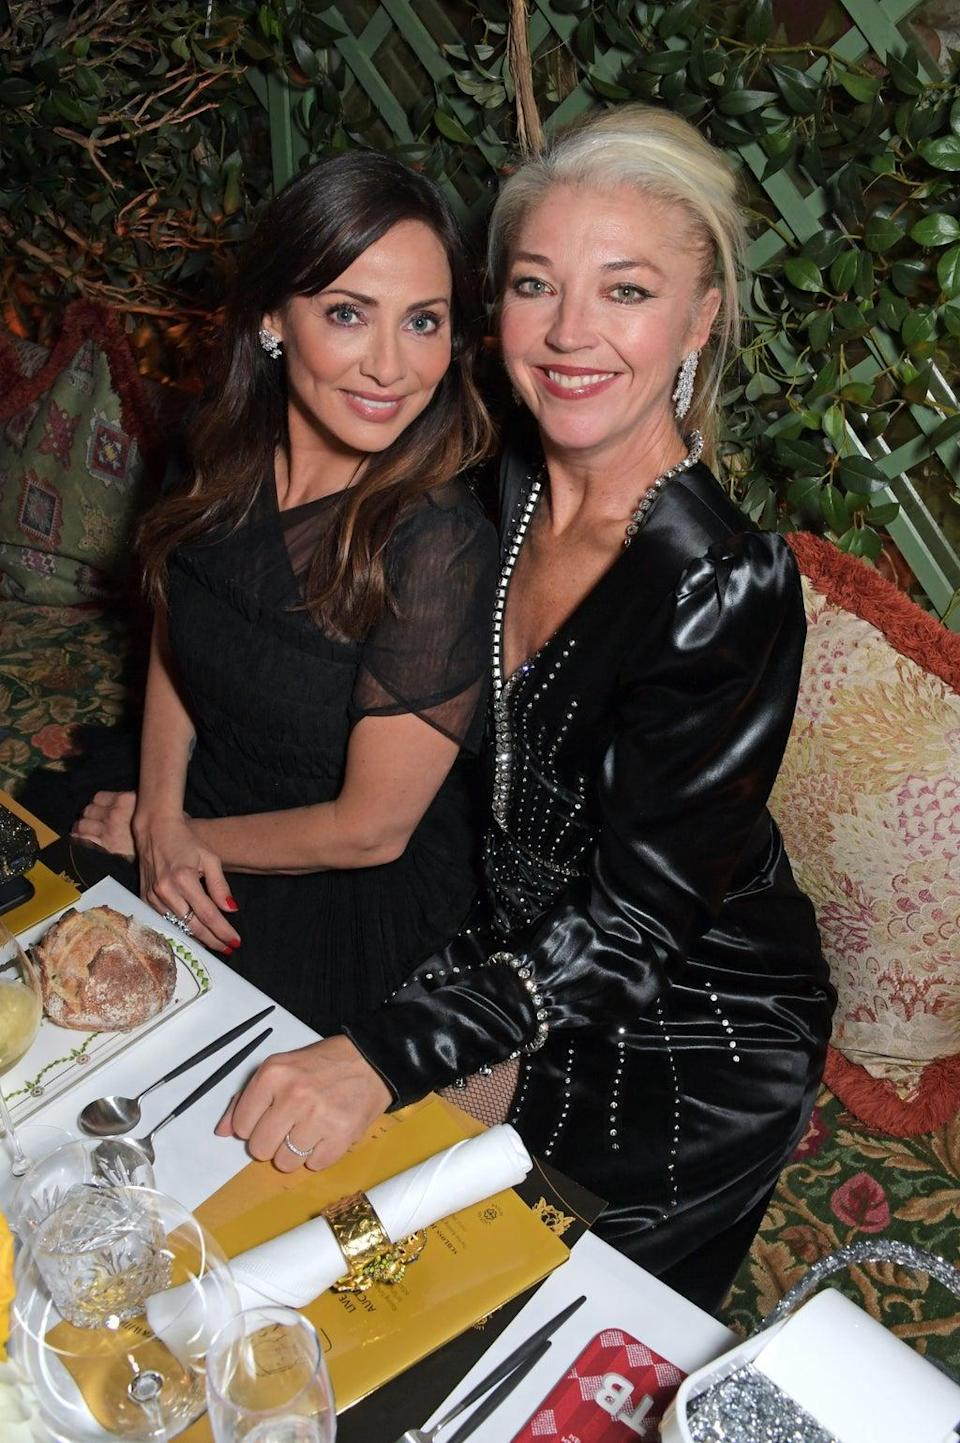 Natalie Imbruglia and Tamara Beckwith at the bash (Dave Benett/Getty Images for Ger)